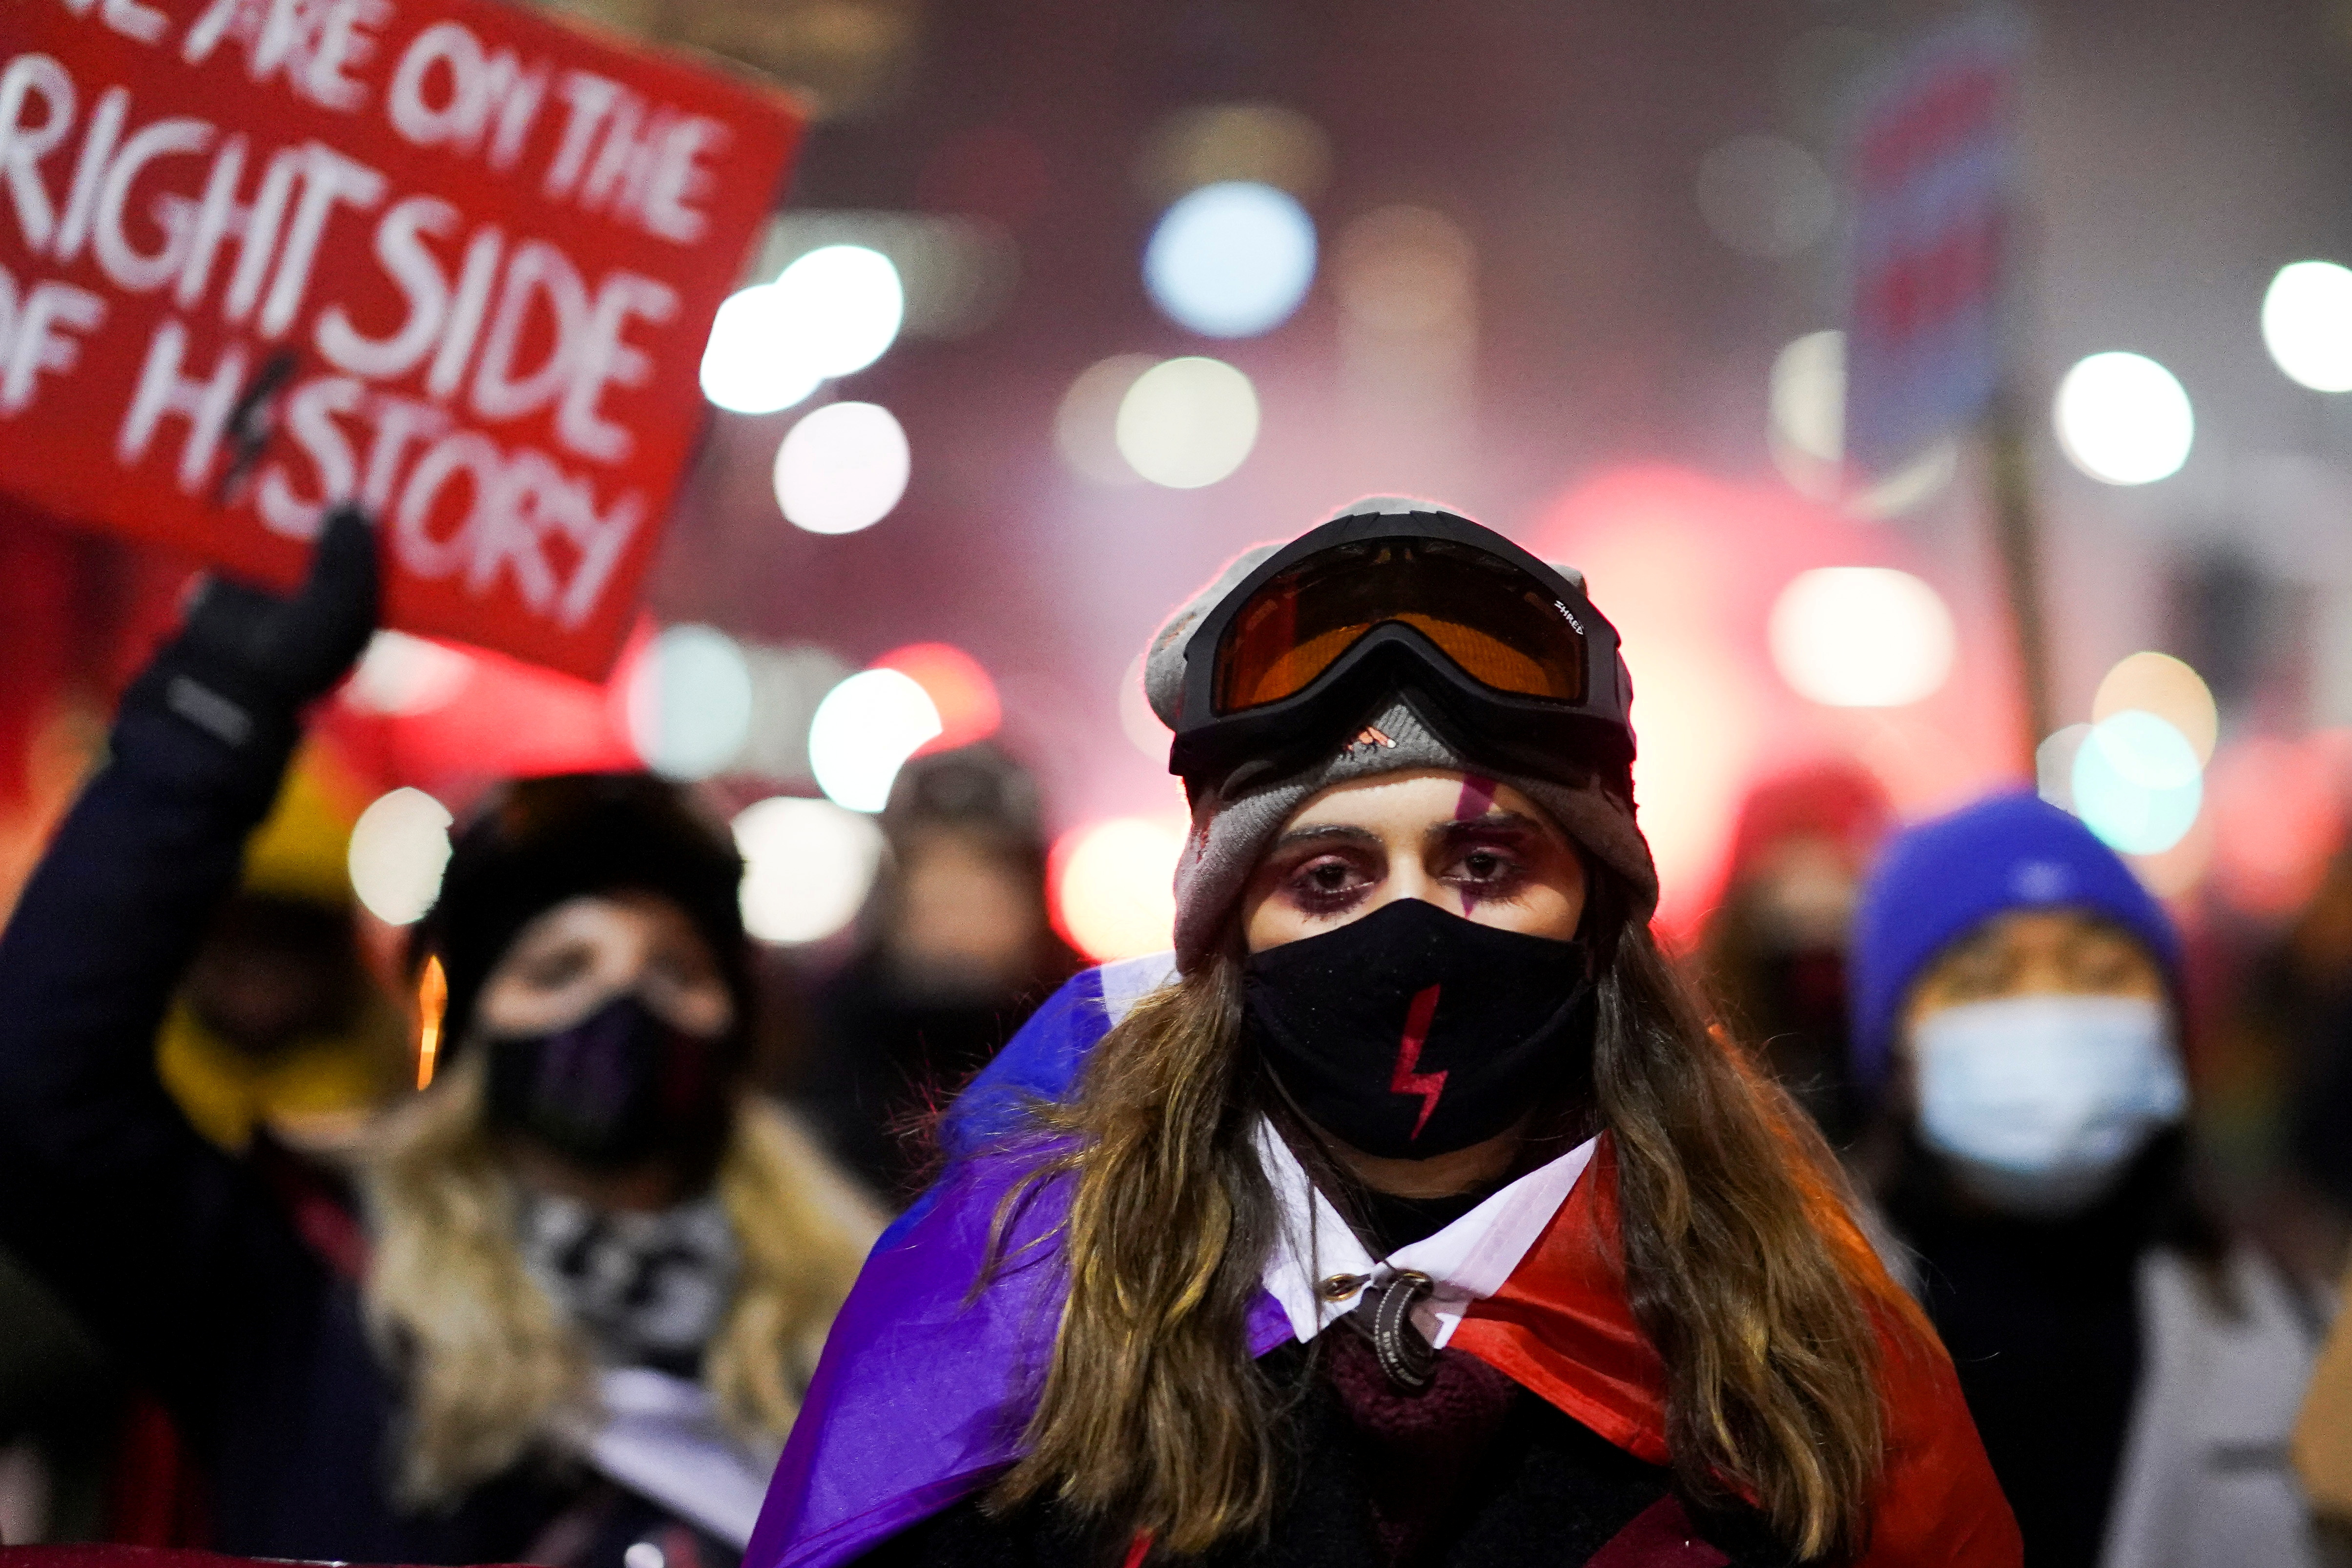 Demonstrators attend a protest against a decision restricting abortion rights in Warsaw, Poland, January 29, 2021. REUTERS/Aleksandra Szmigiel/File Photo